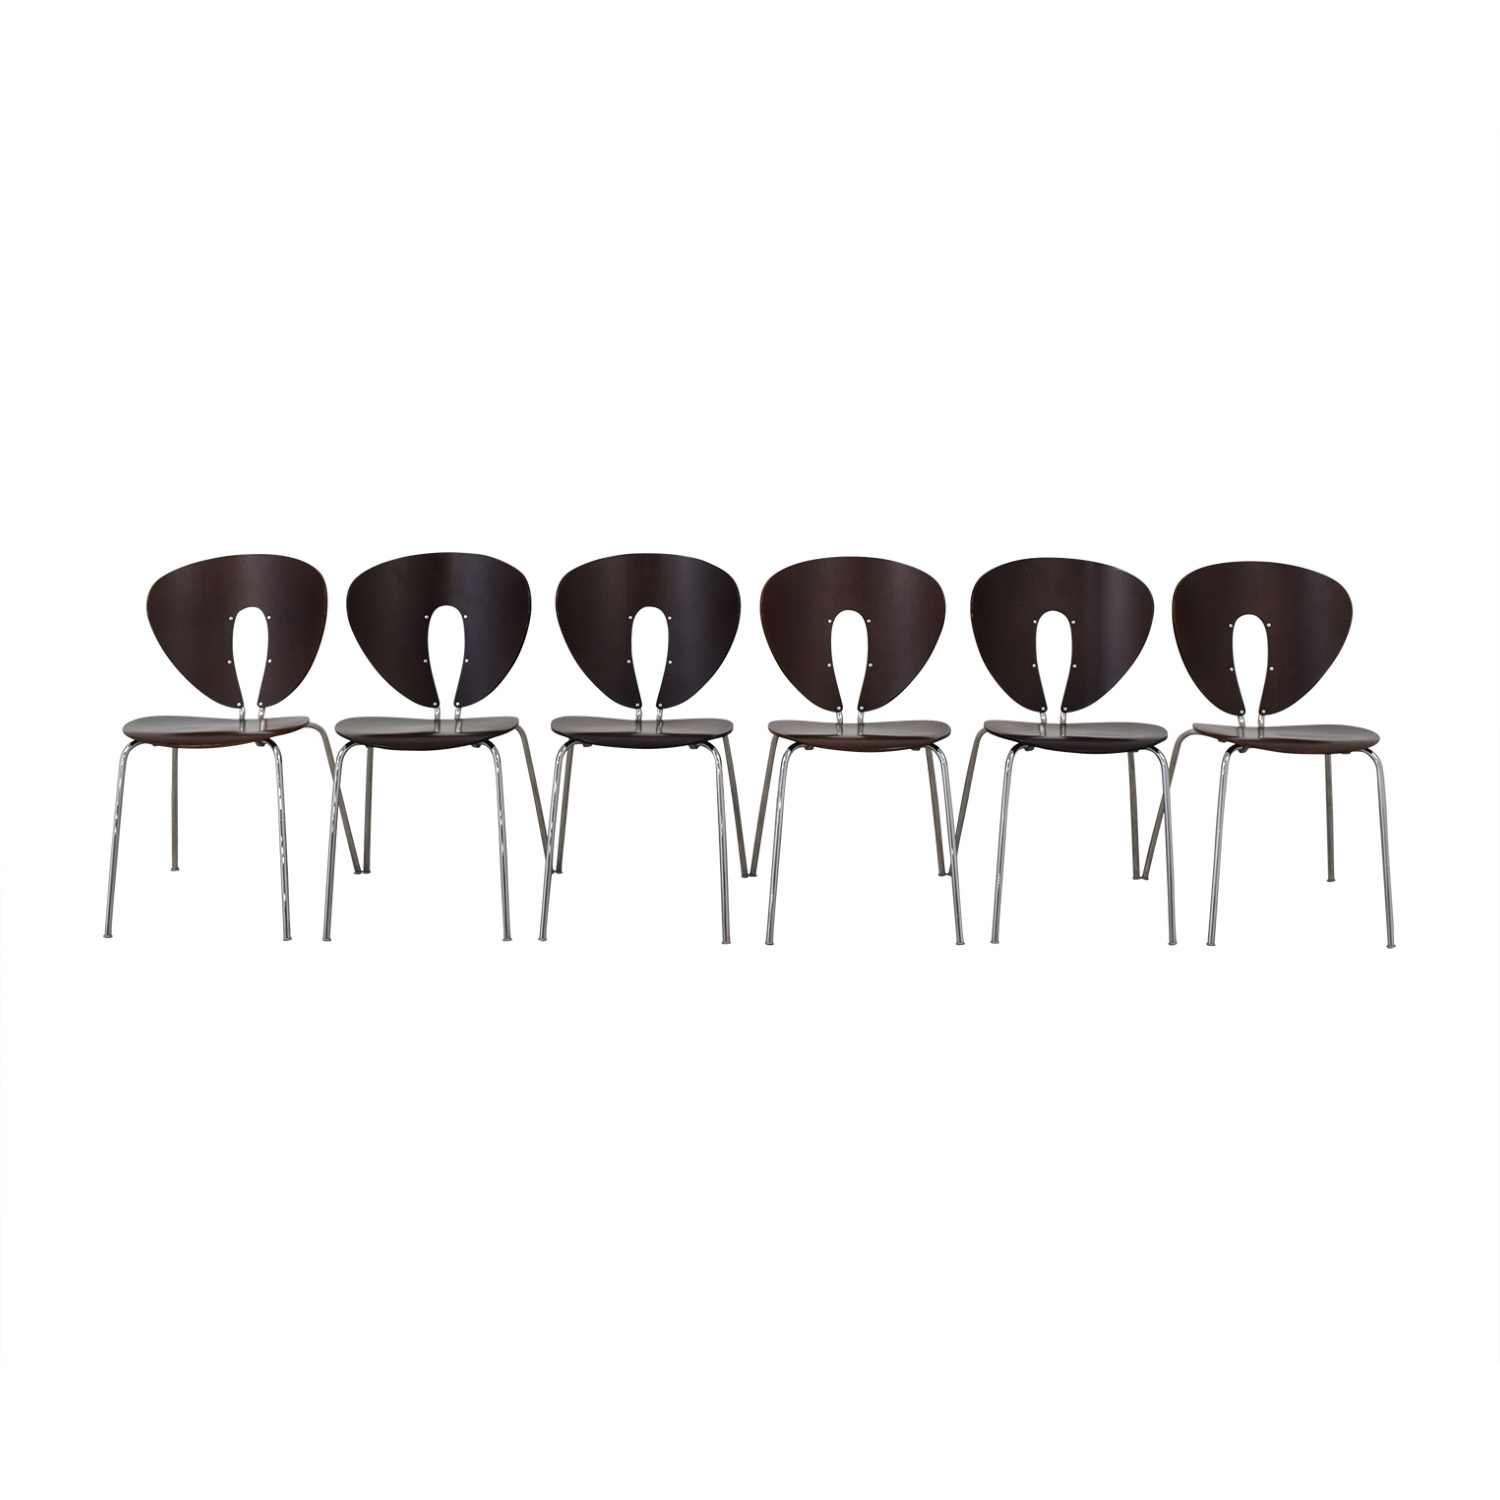 STUA Globus Dining Chairs / Dining Chairs